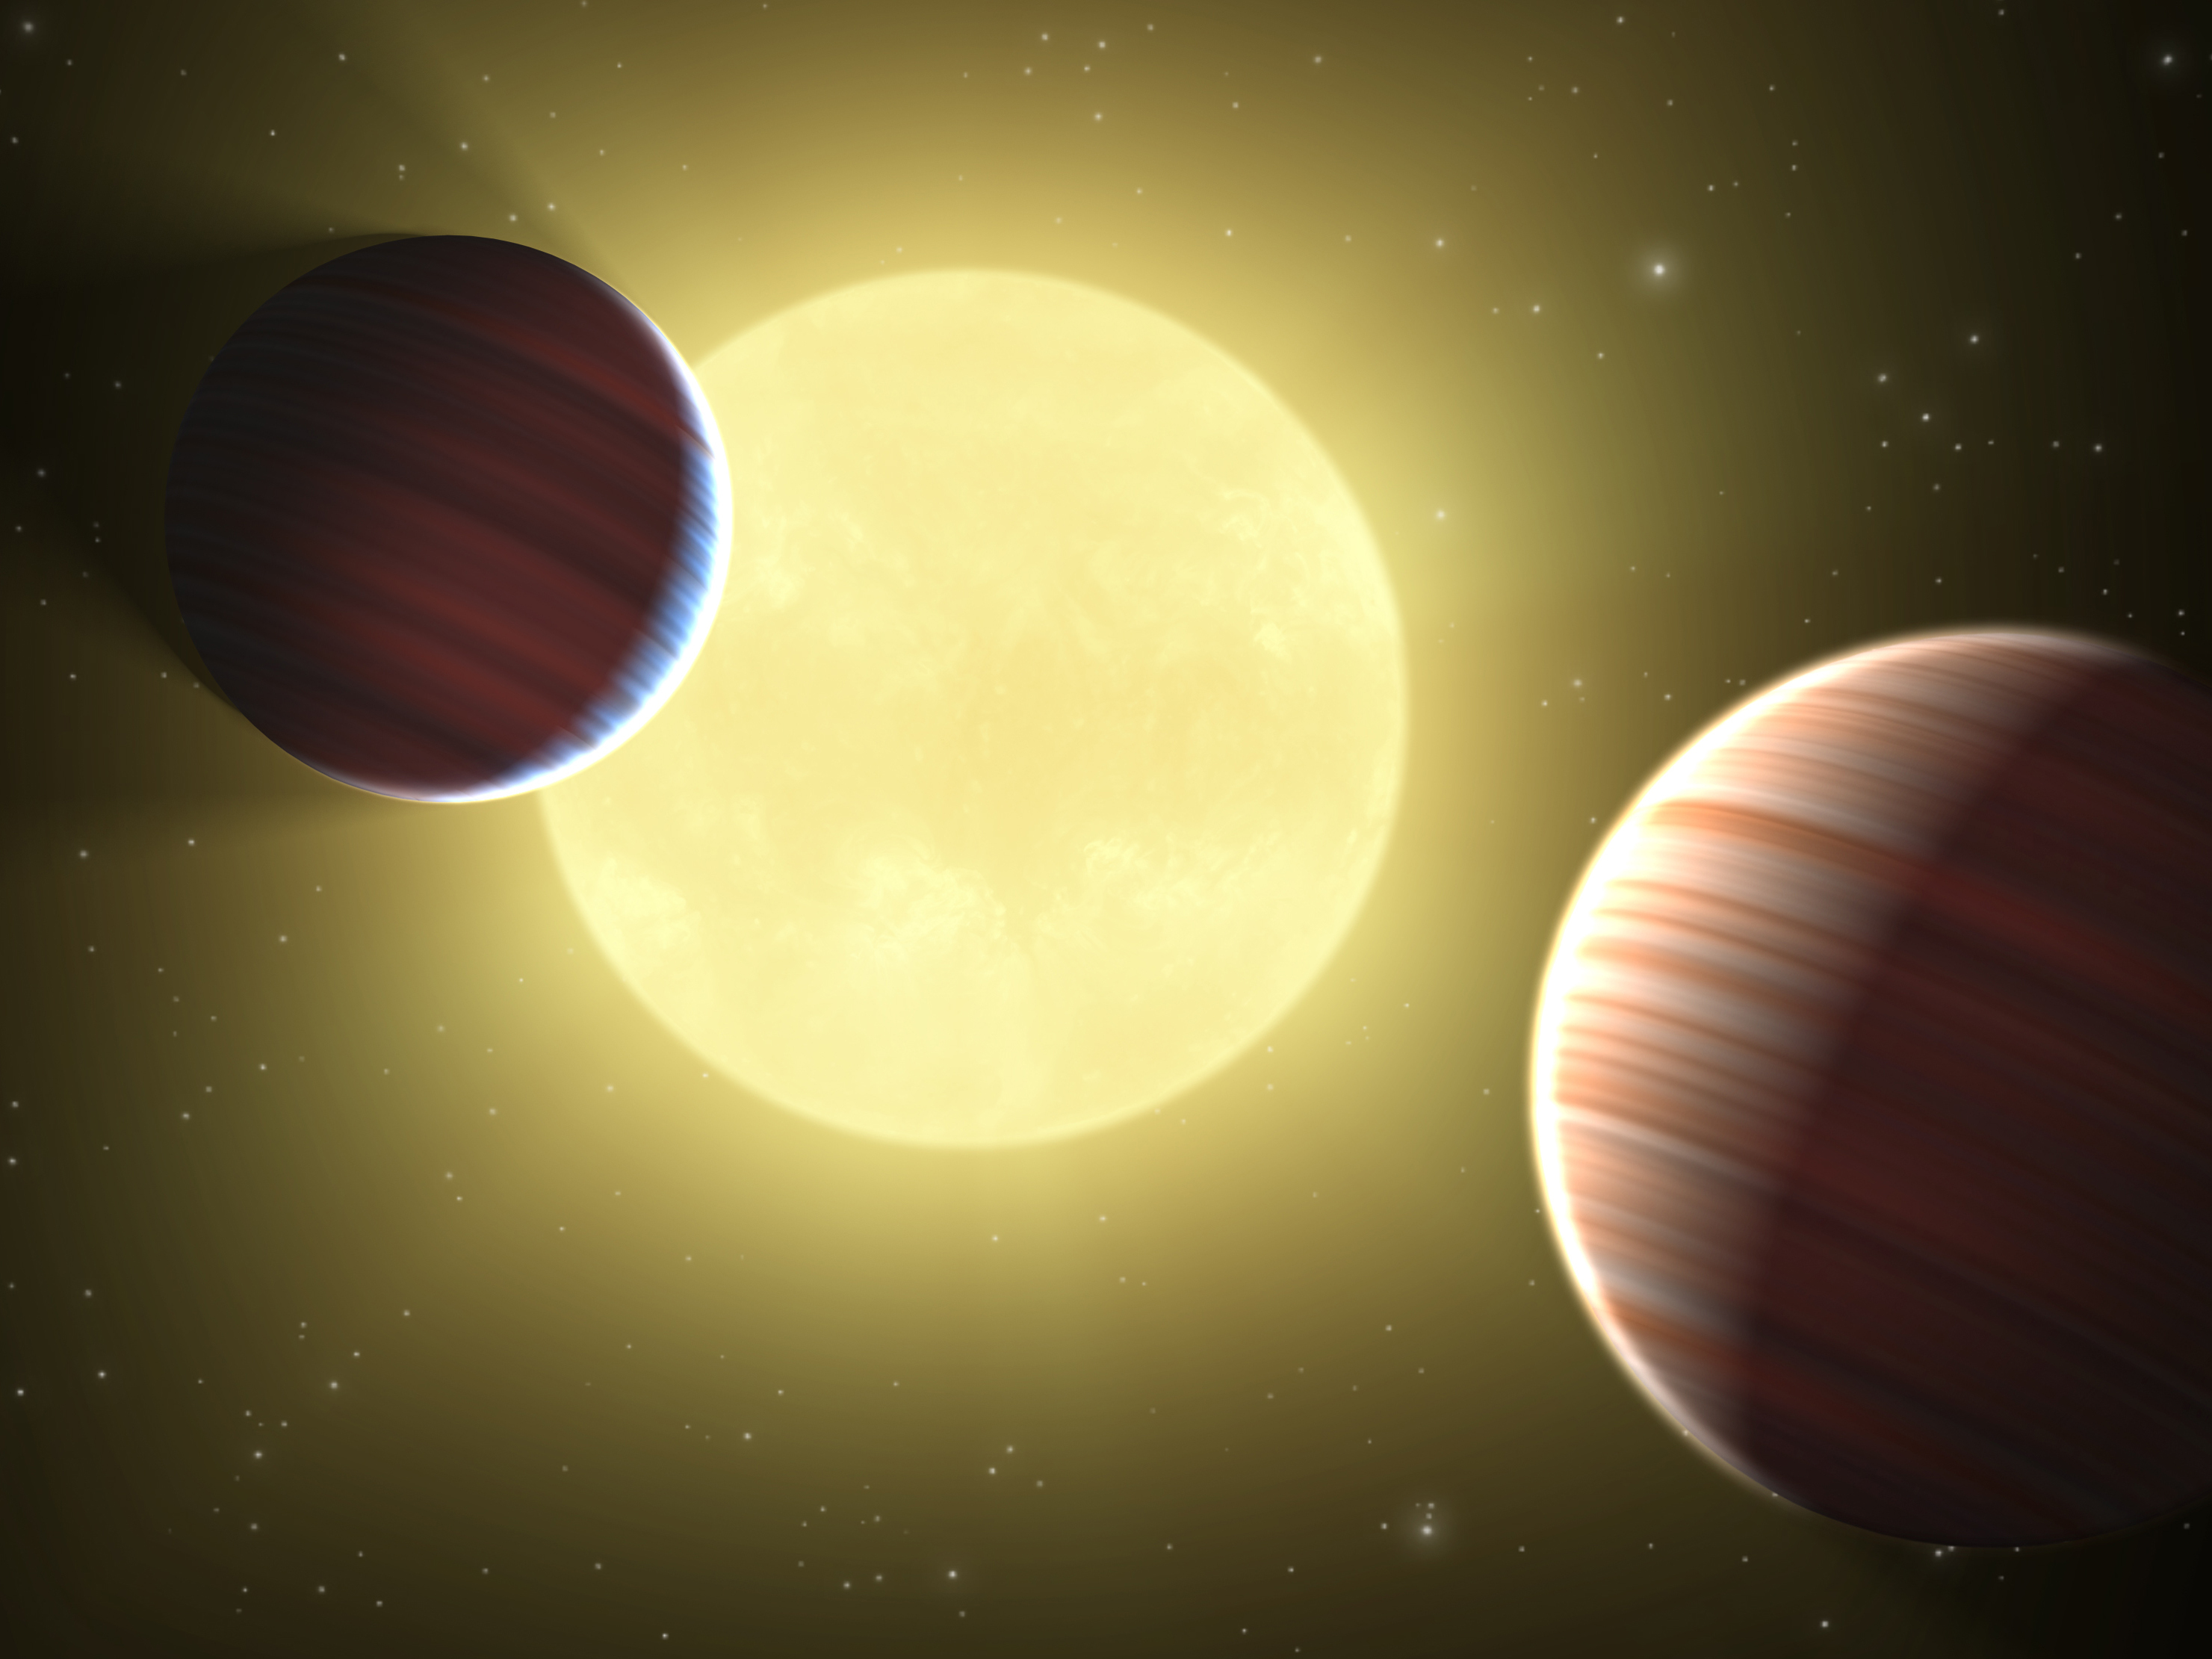 An artist's rendering of the star system containing the new planet. (credit: Courtesy of NASA)